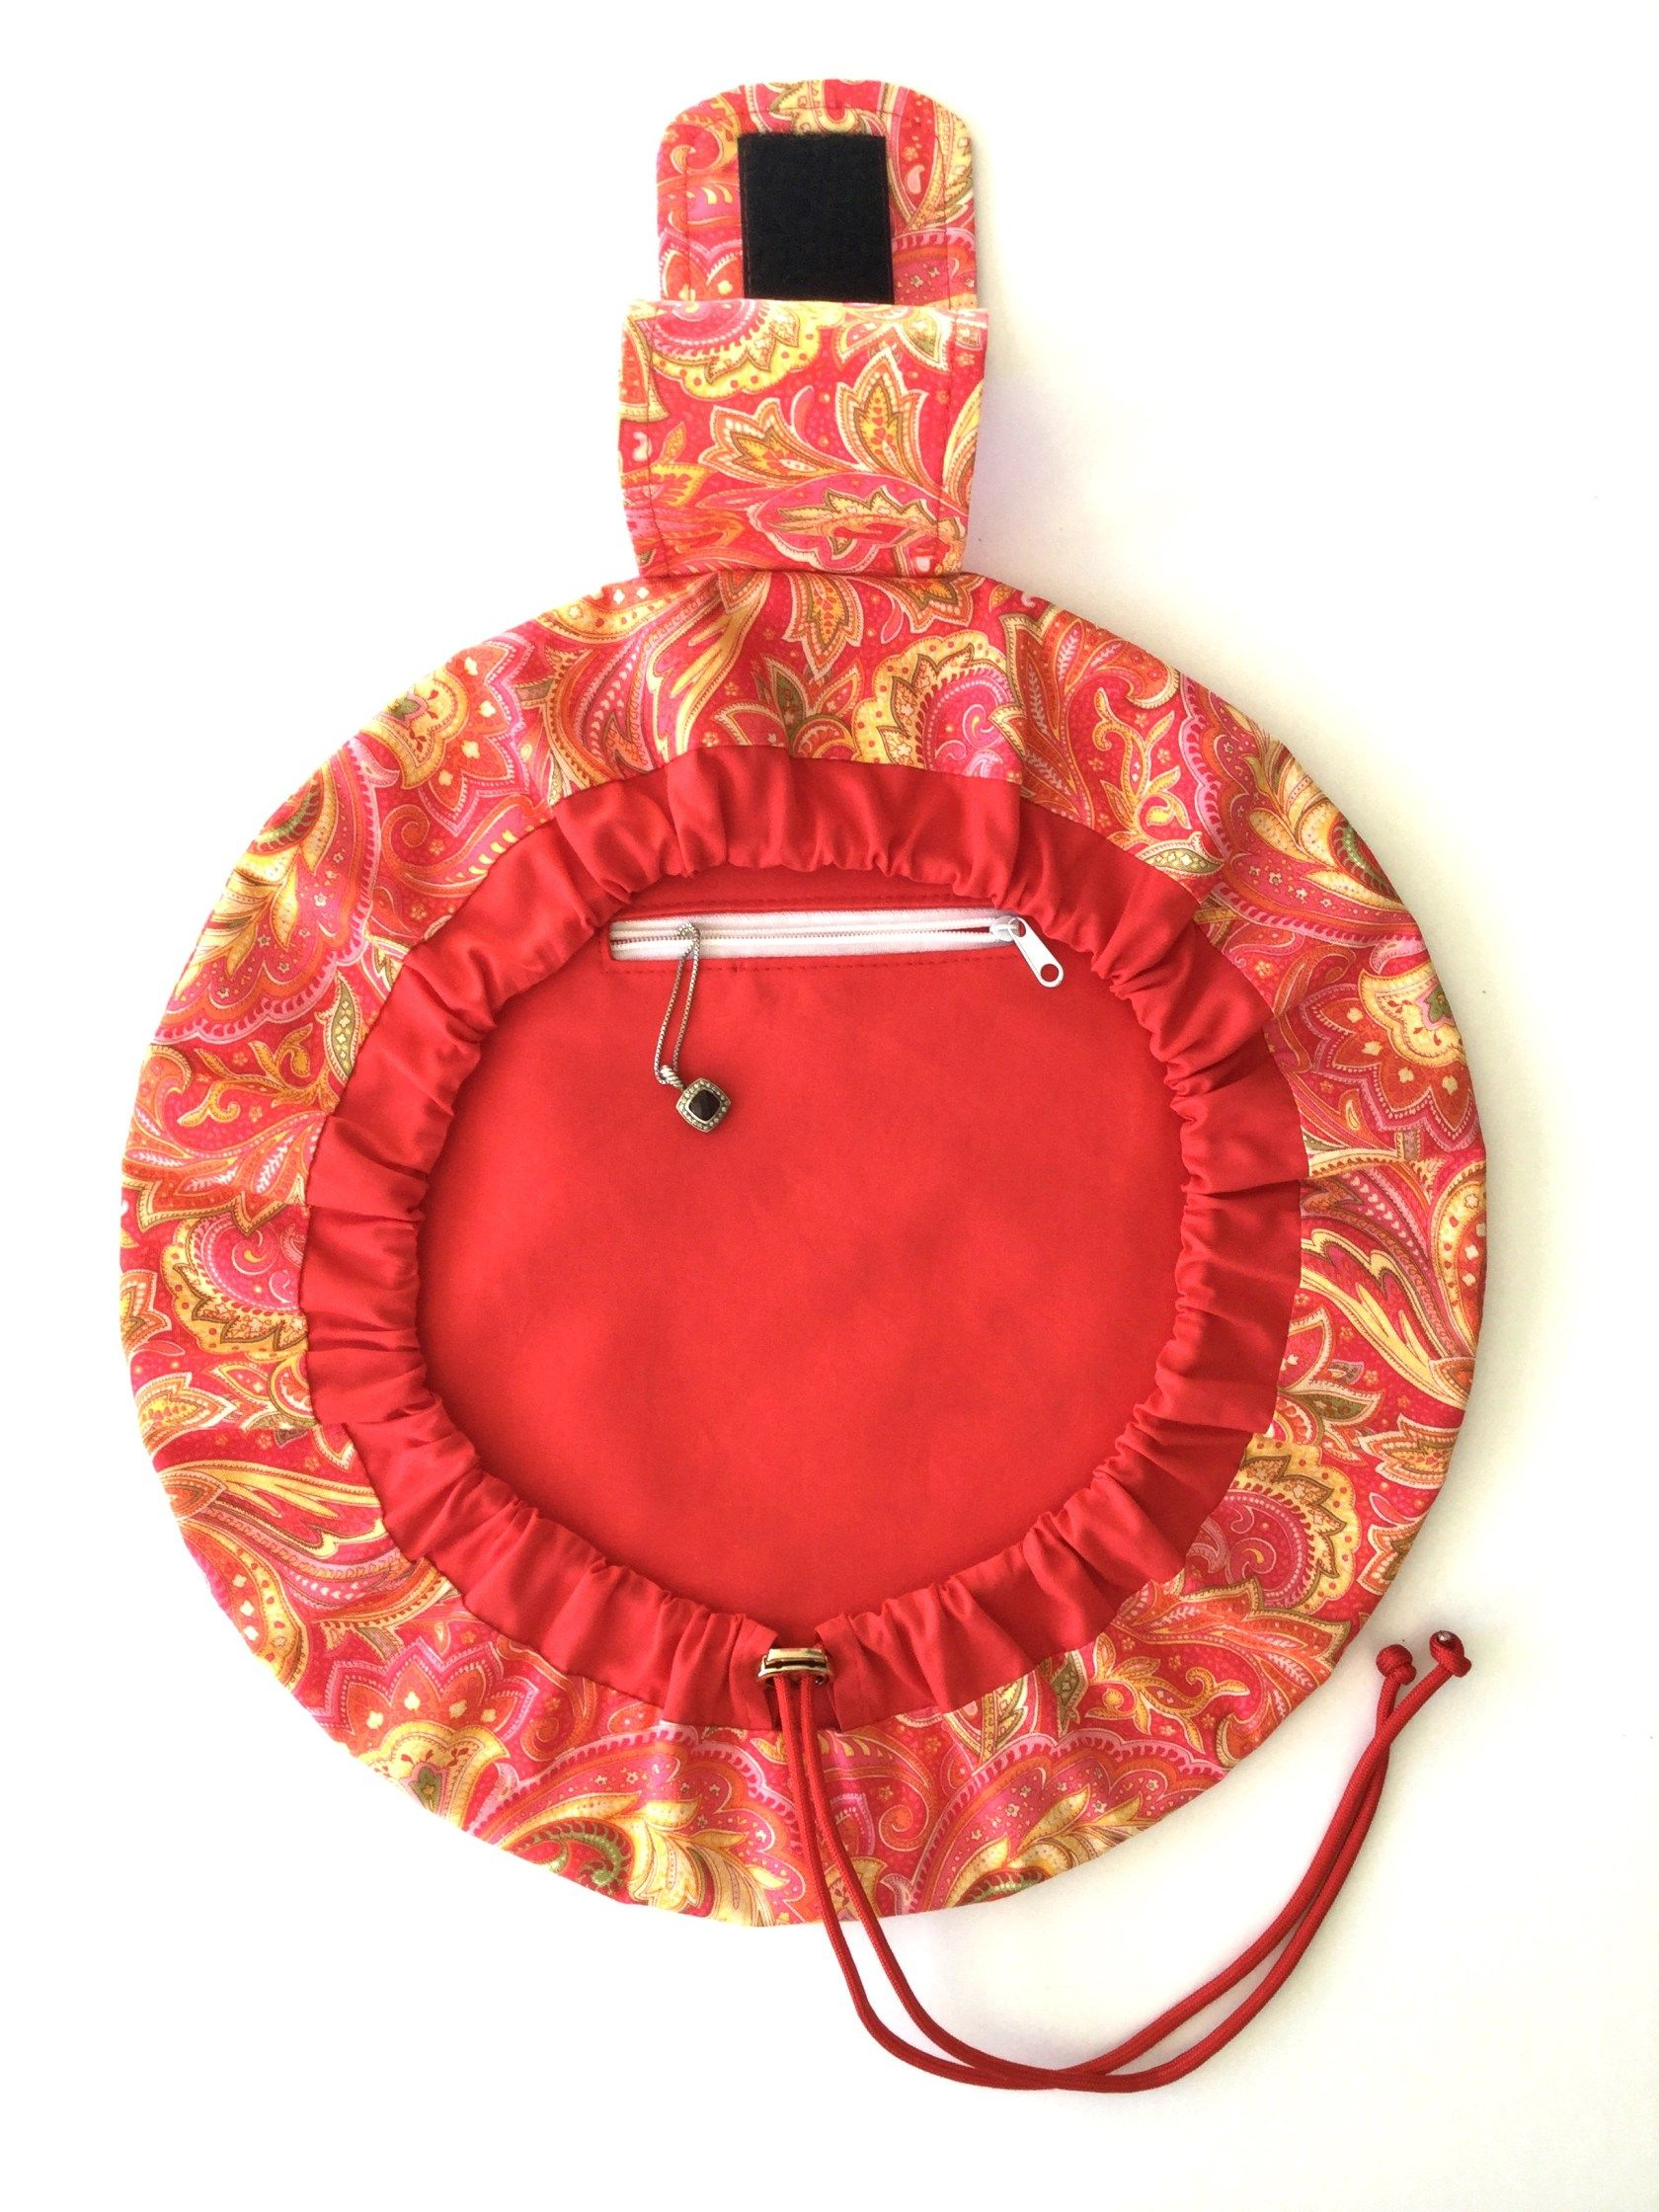 FlatBottom Drawstring Bag Sew and Sell Cosmetic bags